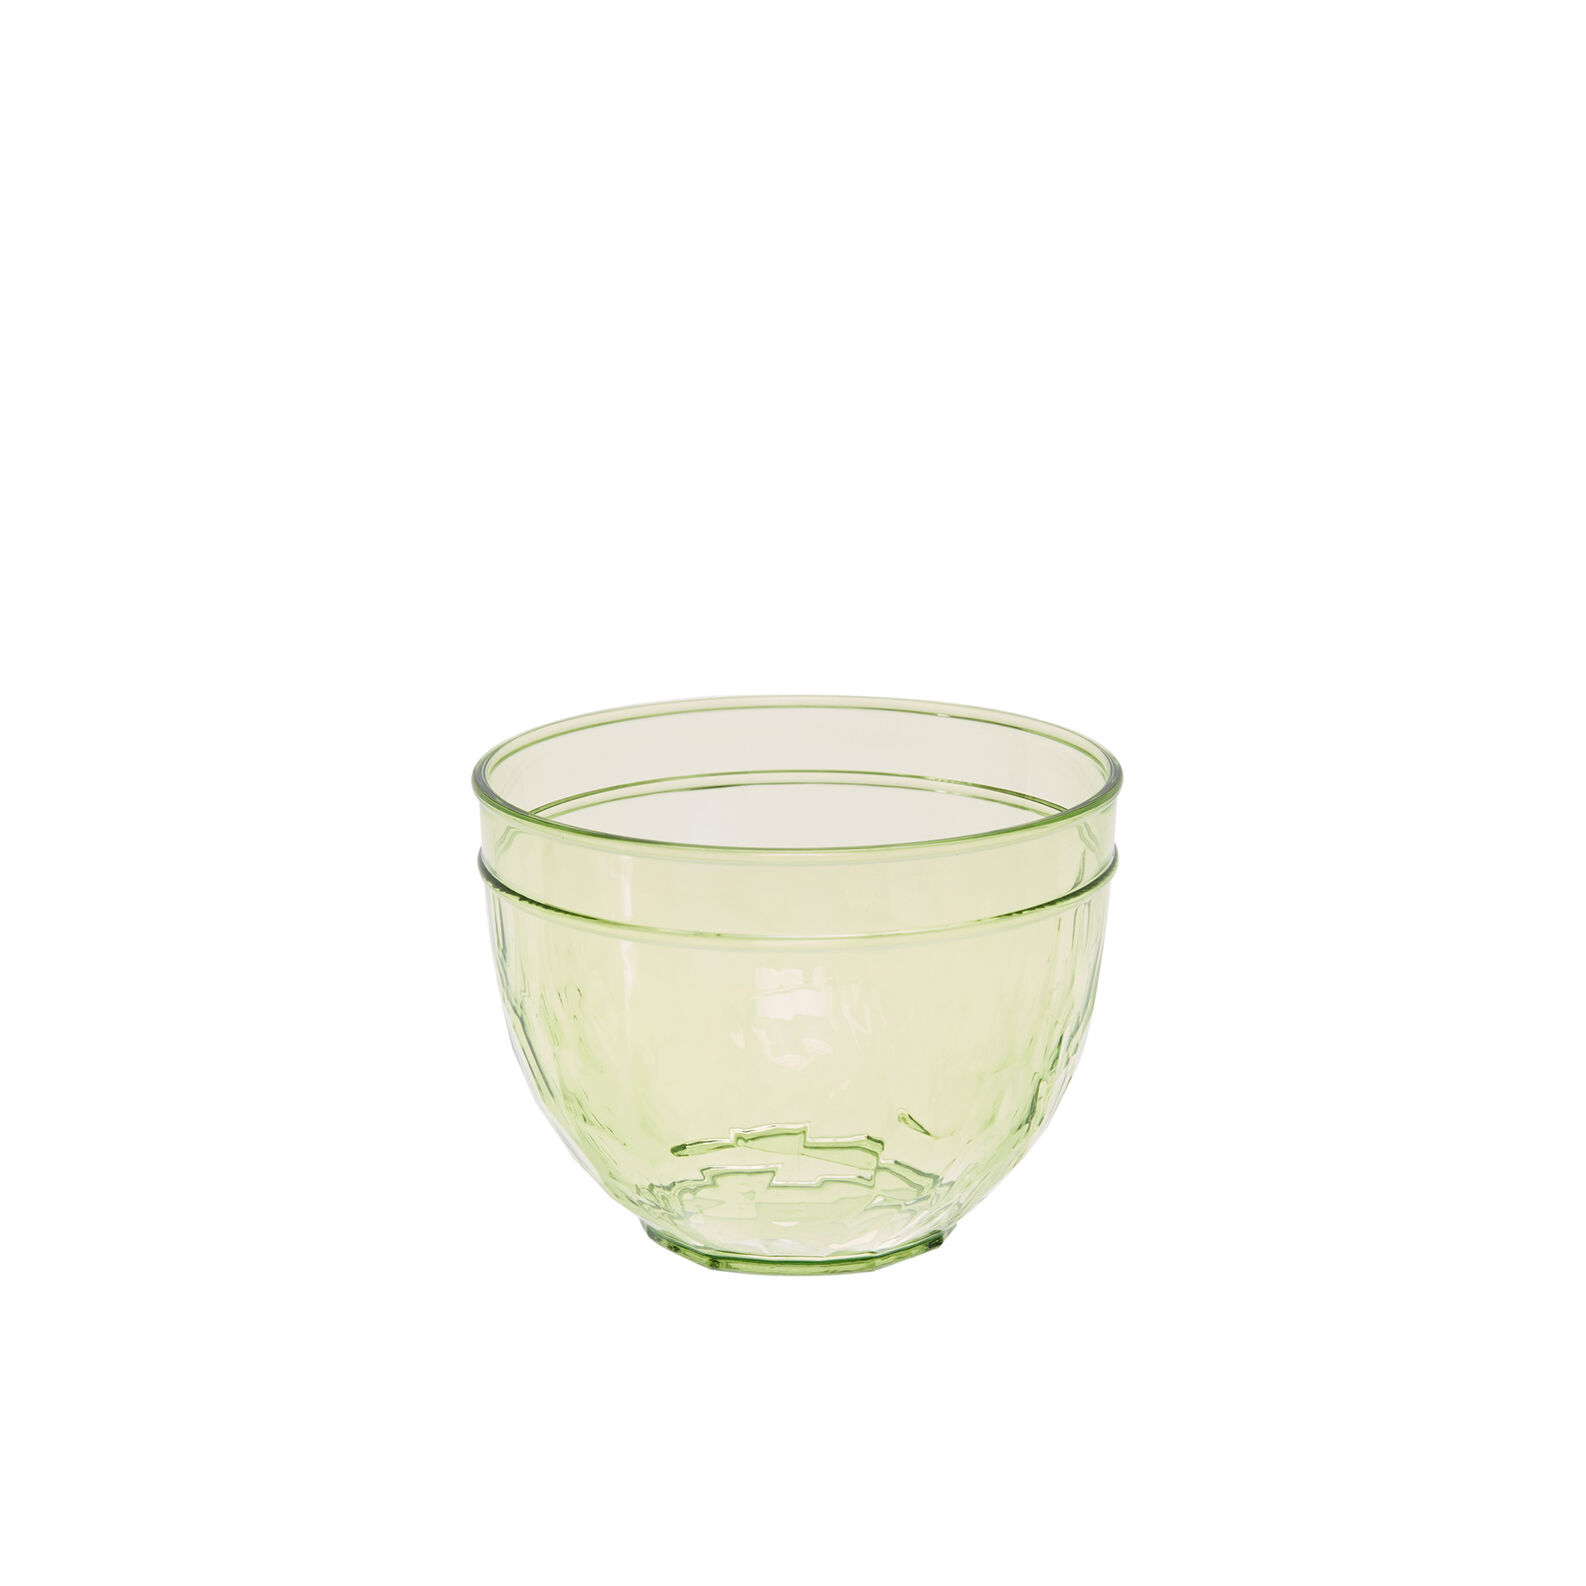 Small green plastic bowl